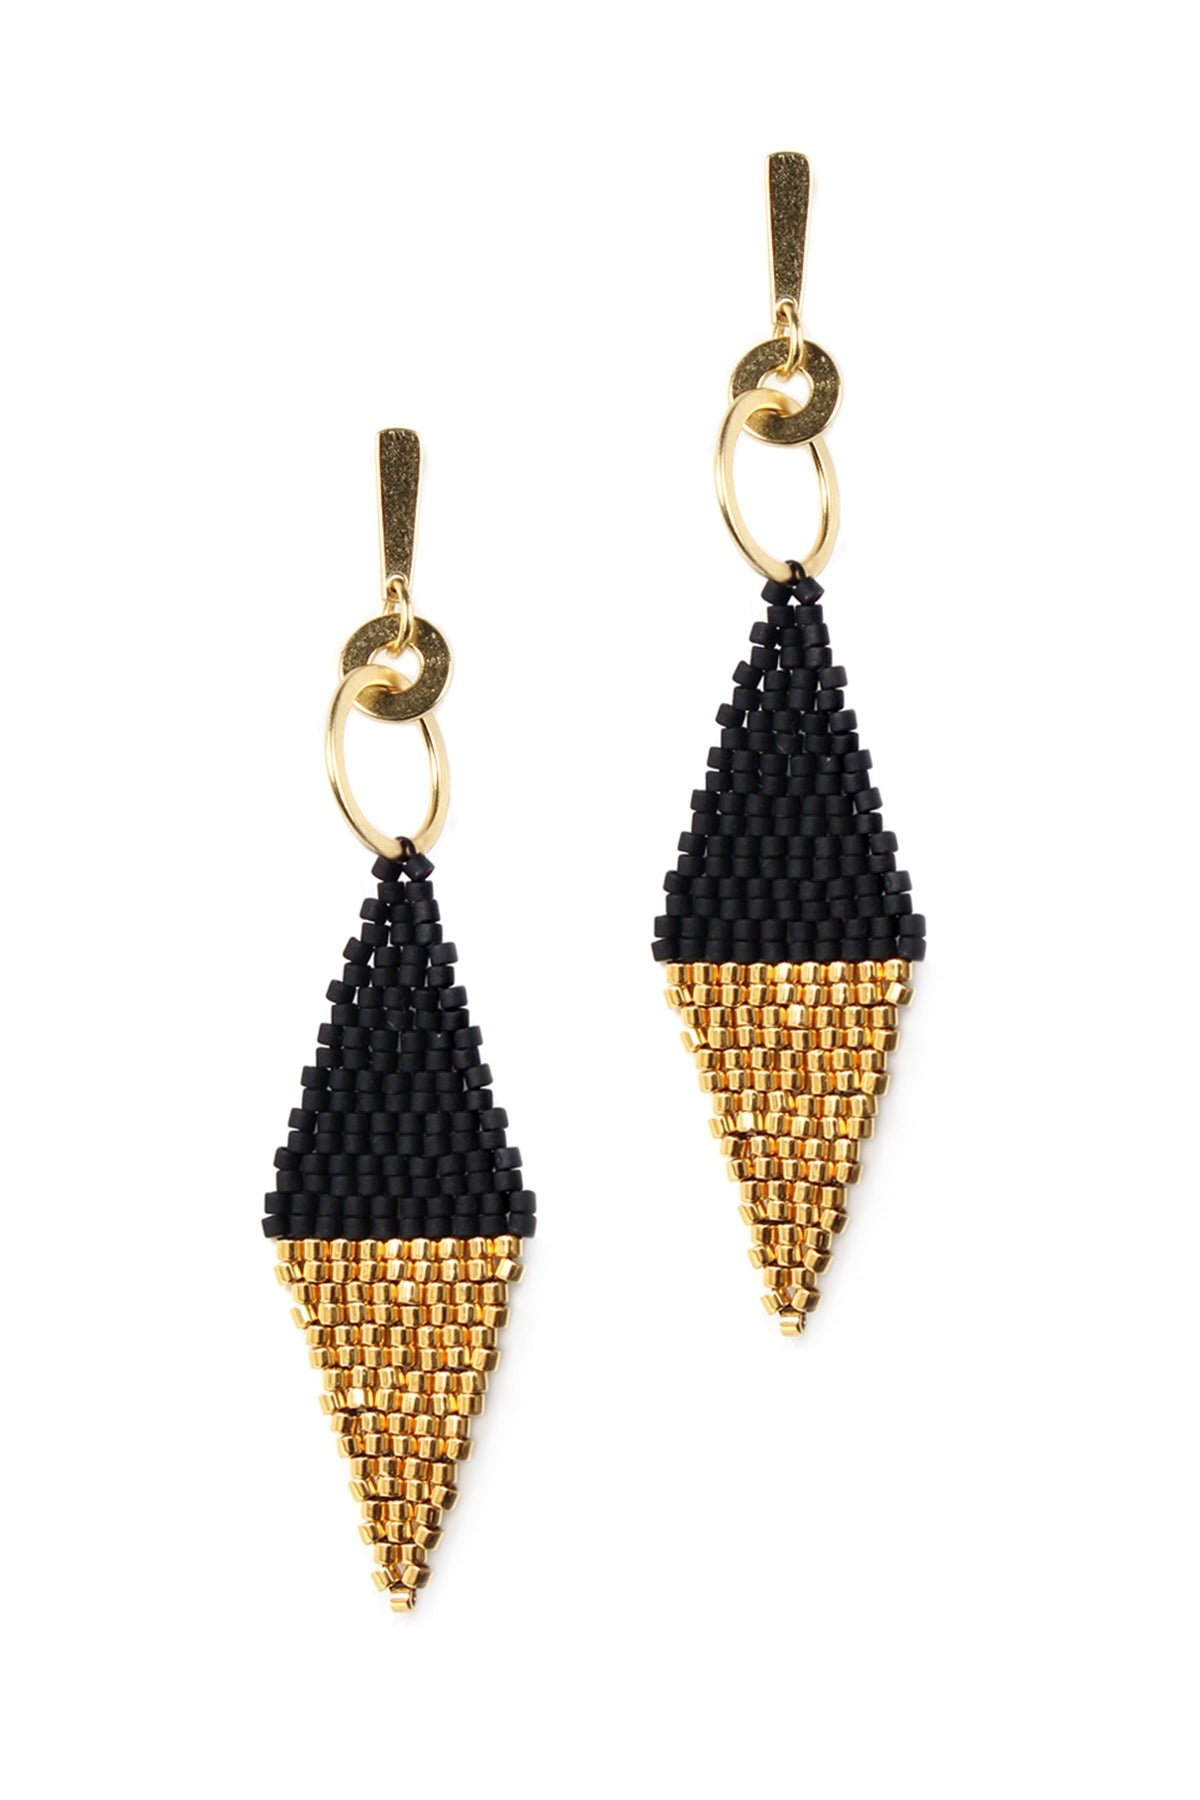 ATHENA EARRINGS BY BLUMA PROJECT